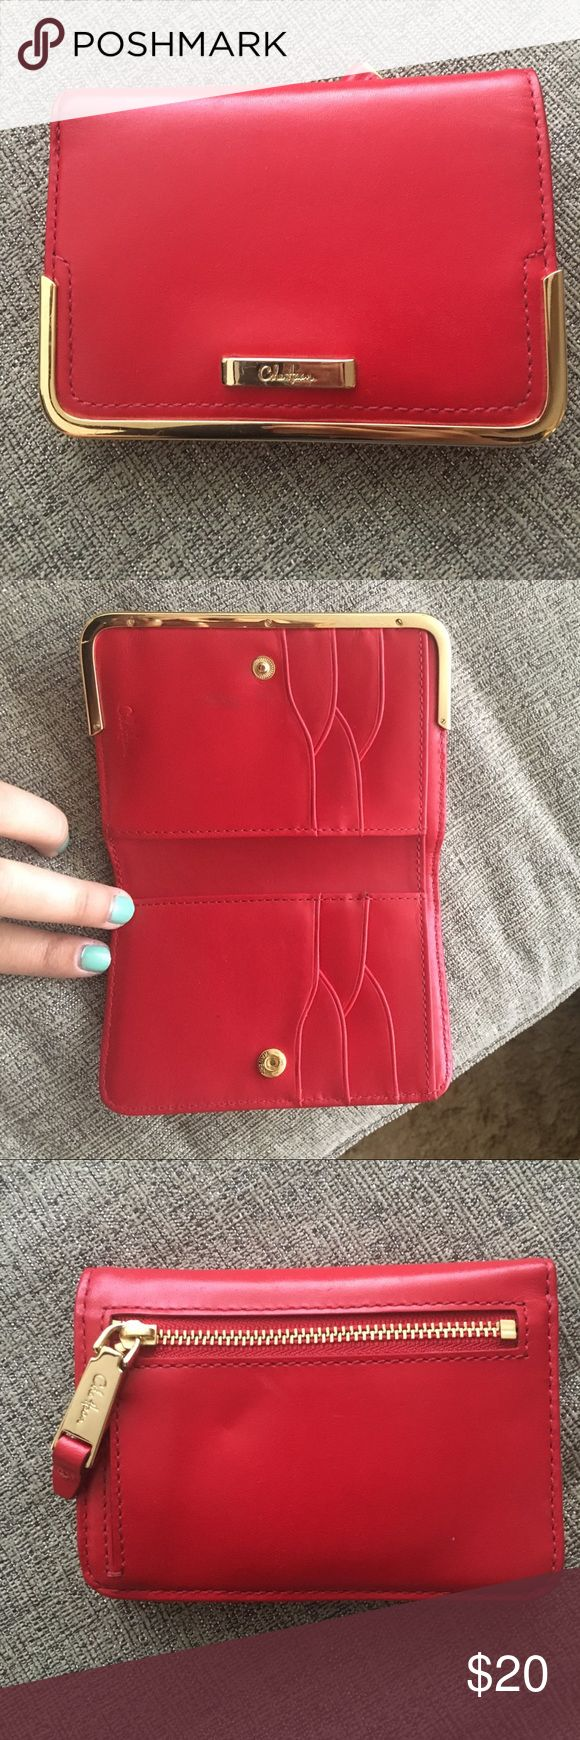 Cole Haan Red Wallet!! Cole Haan Red Wallet!! This is a super cute red wallet with gold detail. Has a small imperfection shown in last picture. Very cute card holders and change purse on the back! Cole Haan Accessories Watches